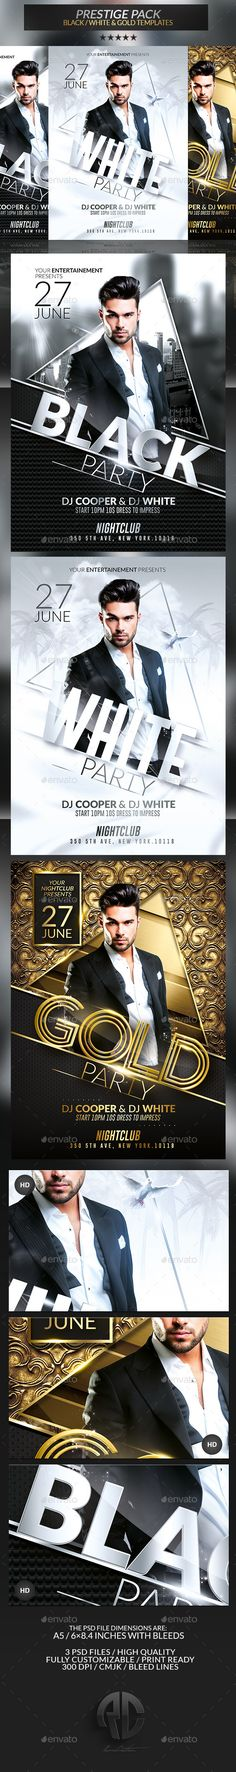 Prestige Pack | Psd Flyer Templates  'Prestige Pack Flyer Templates' on #EnvatoMarket by @RomeCreation #graphicriver graphicriver.net/... … #templates #black #gold #white #classy #event #flyer #prestige #envato #pack #stock #poster #creative #celebrate #affair #dj #romecreation